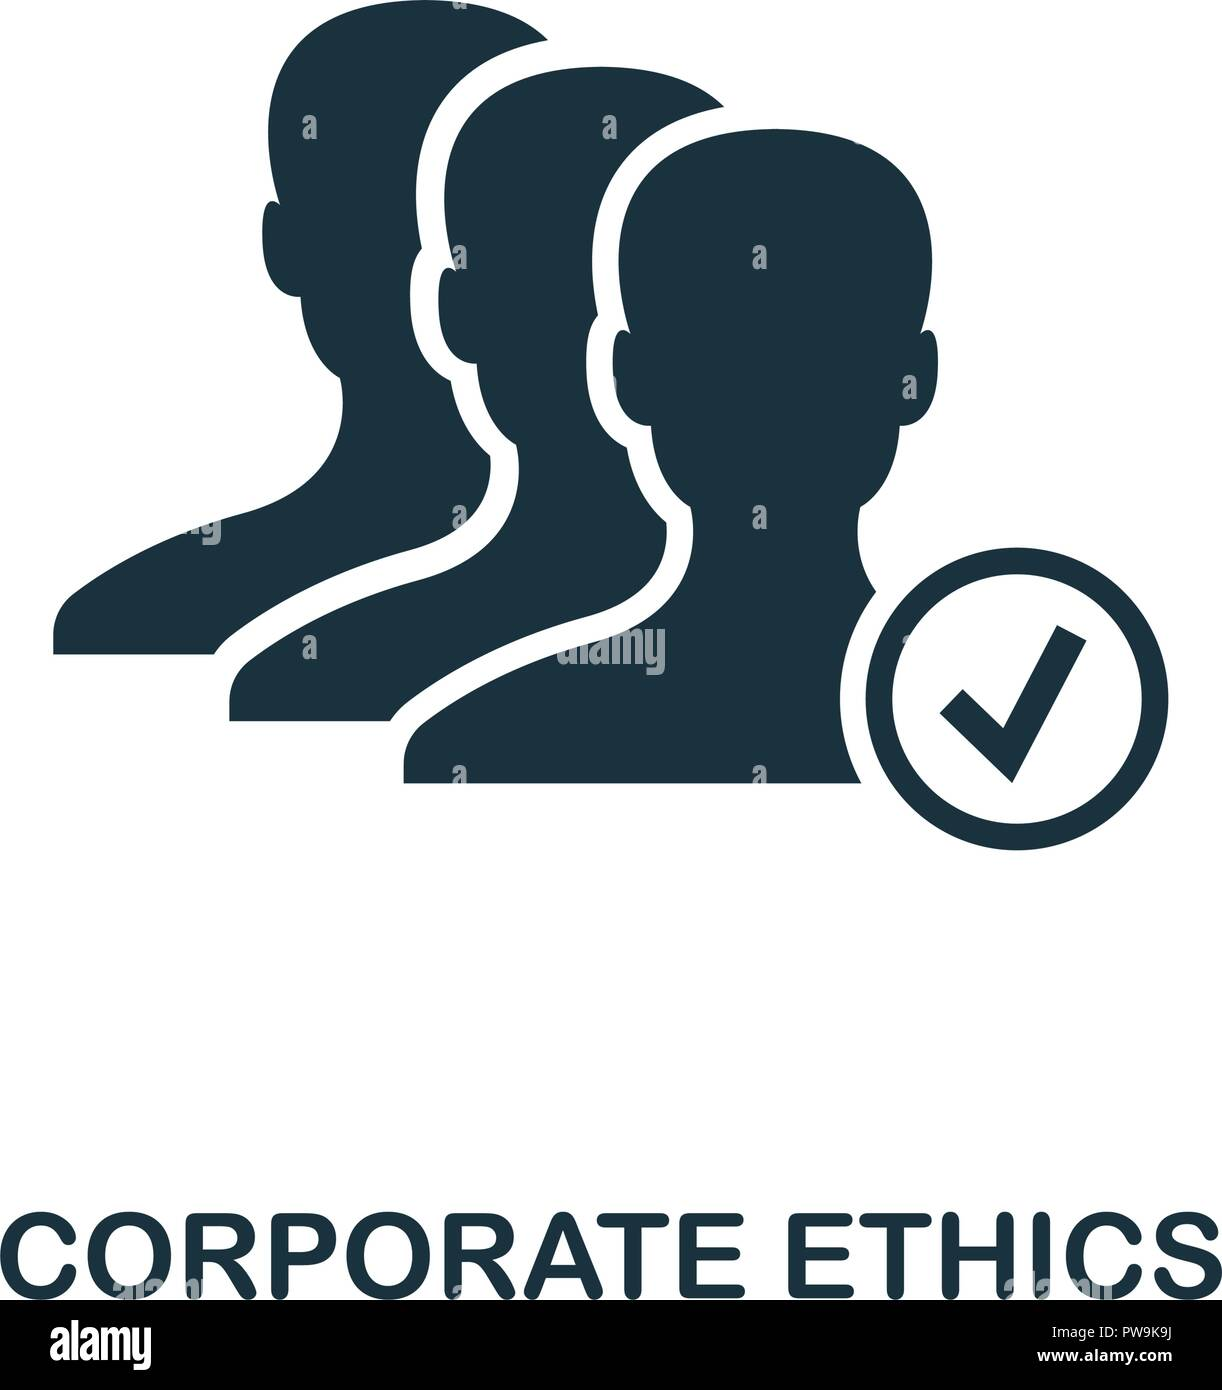 Corporate Ethics icon. Monochrome style design from business ethics icon collection. UI and UX. Pixel perfect corporate ethics icon. For web design, apps, software, print usage. - Stock Image